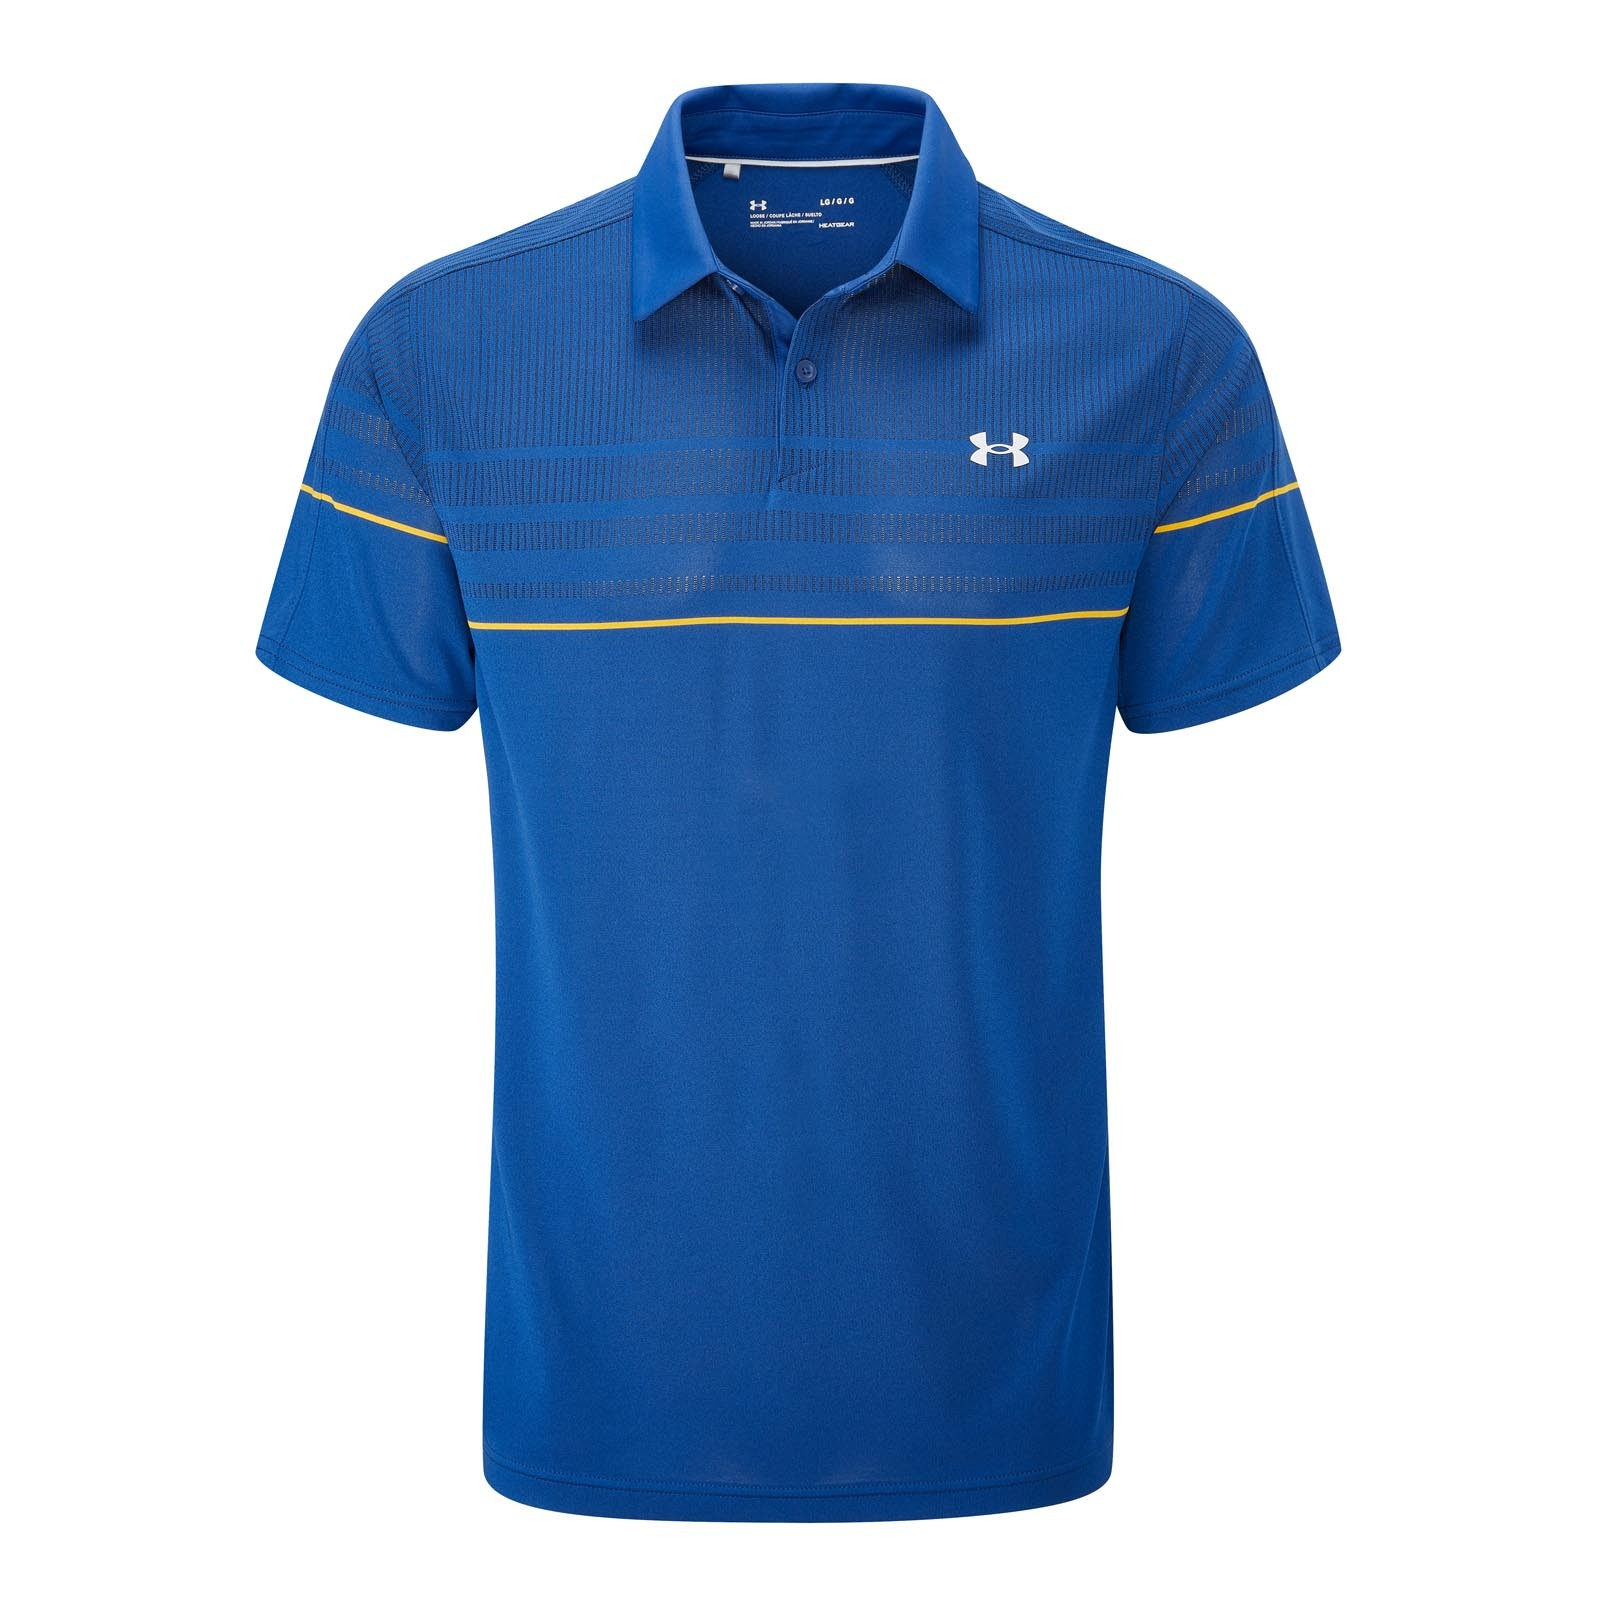 Under Armour Vanish 1UP Polo